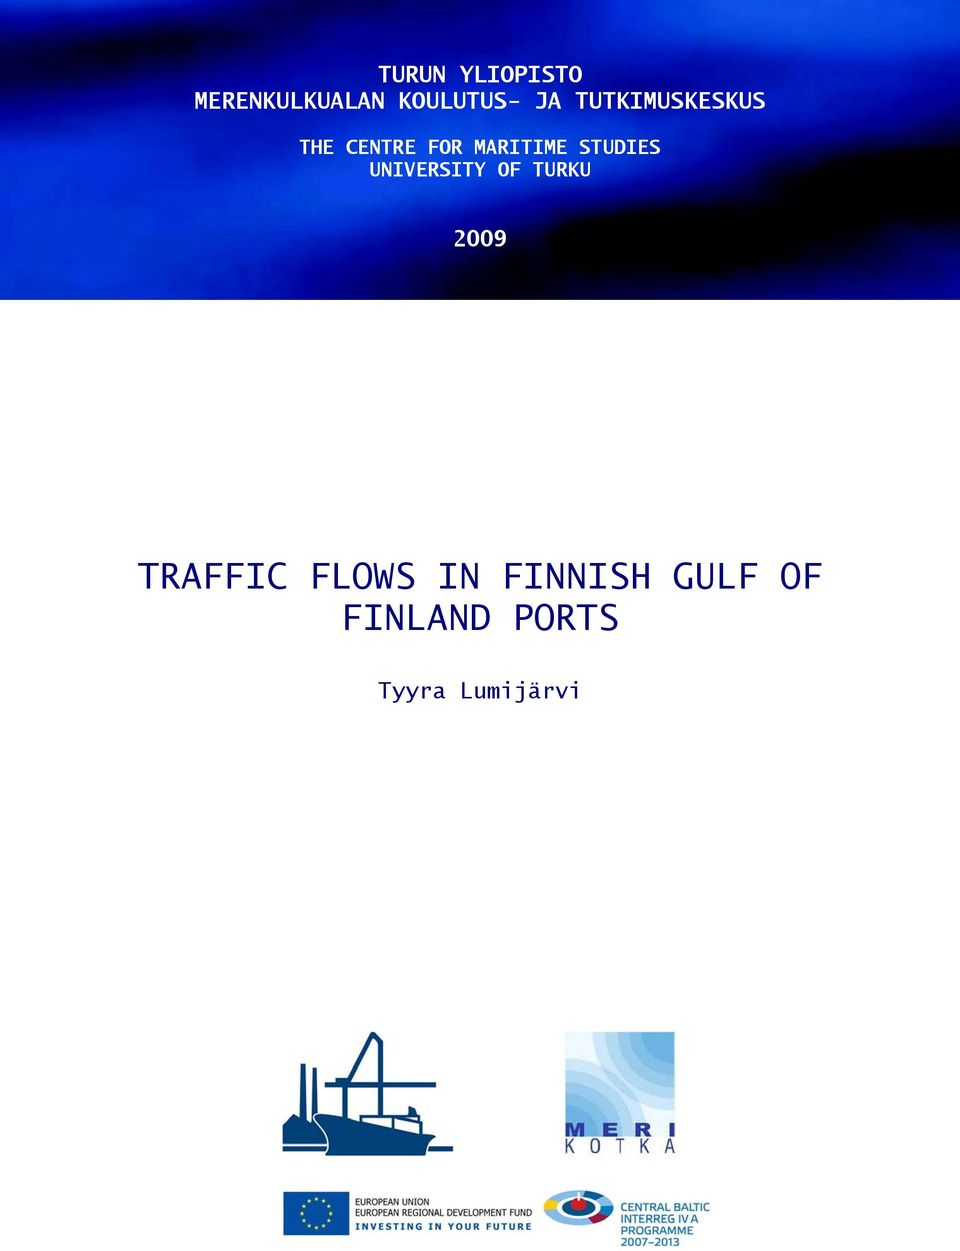 STUDIES UNIVERSITY OF TURKU 2009 TRAFFIC